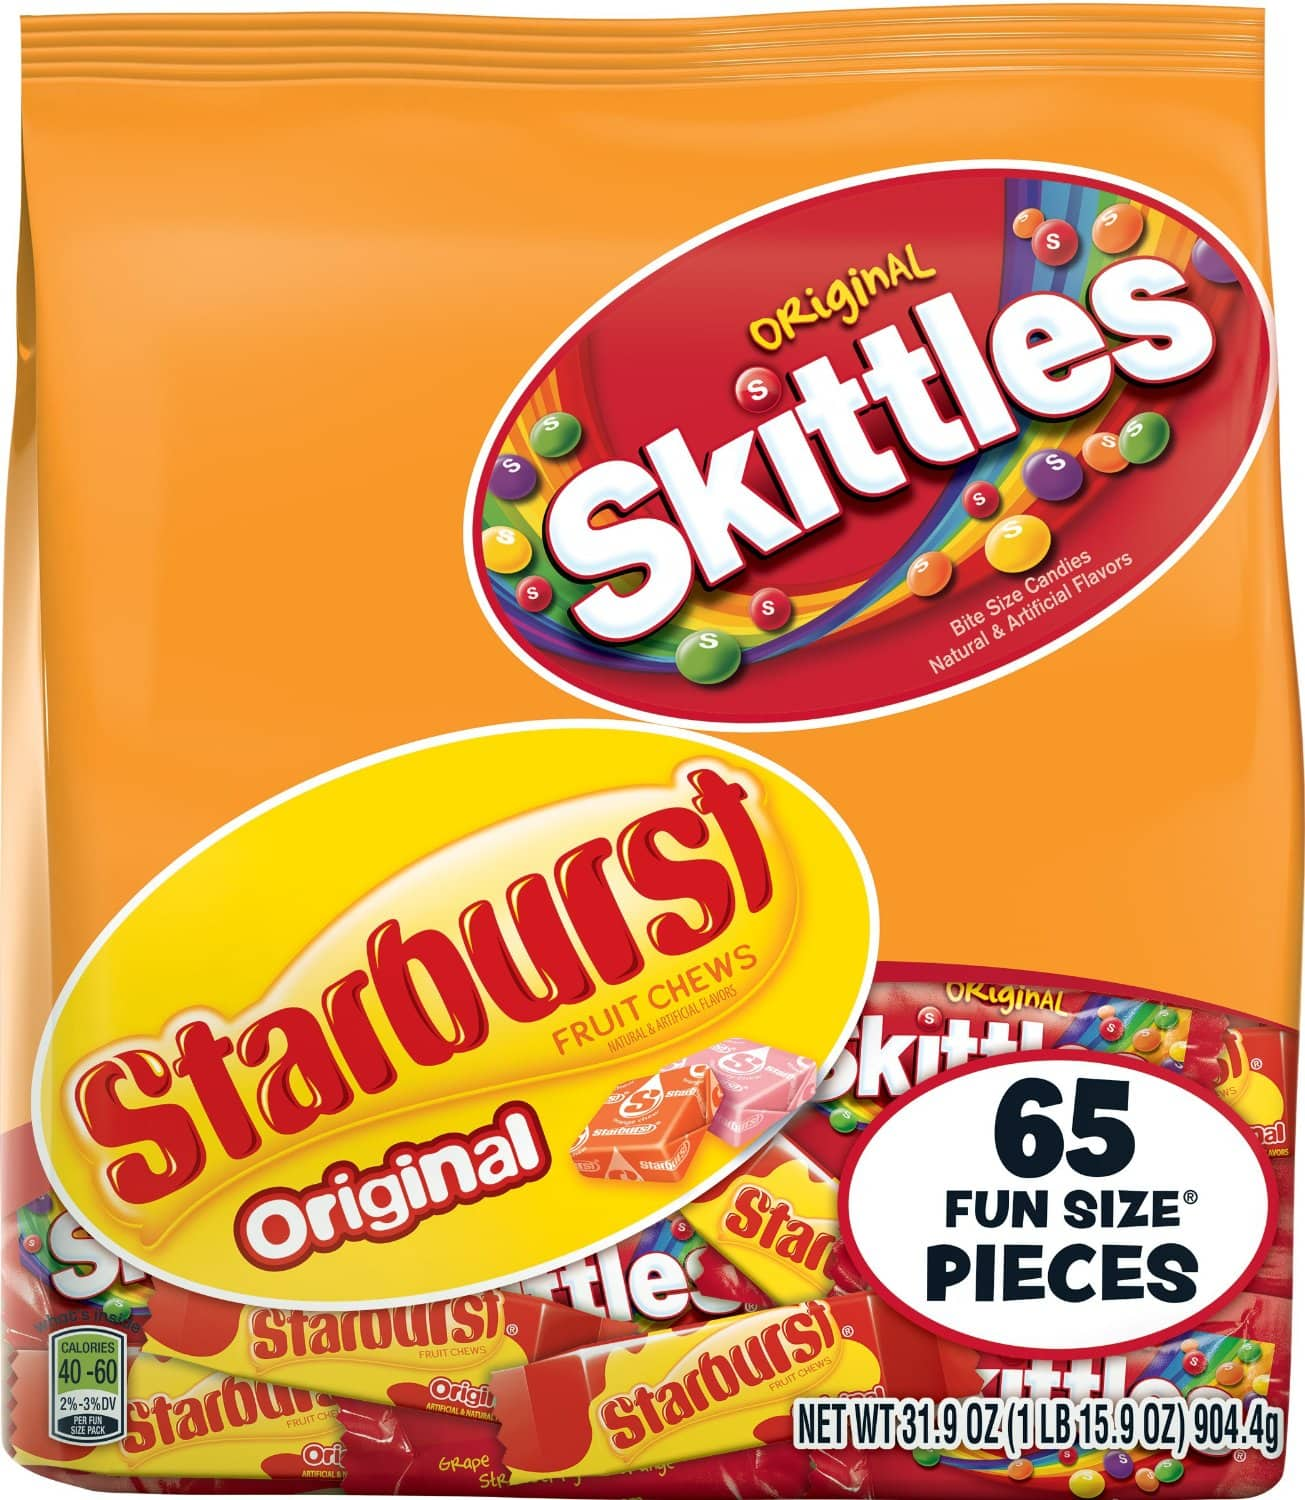 Skittles and Starburst Original Halloween Candy Bag, 65 Fun Size Pieces $5.68 or less